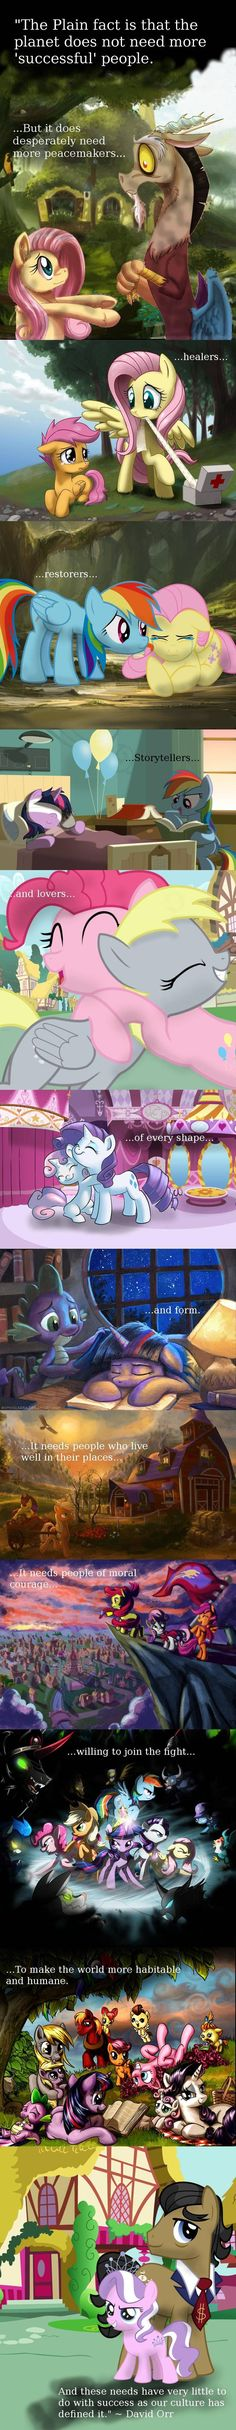 Inspiring quote told in My Little Pony fanart - via reddit - yes i know it's my little pony but this is actually cool